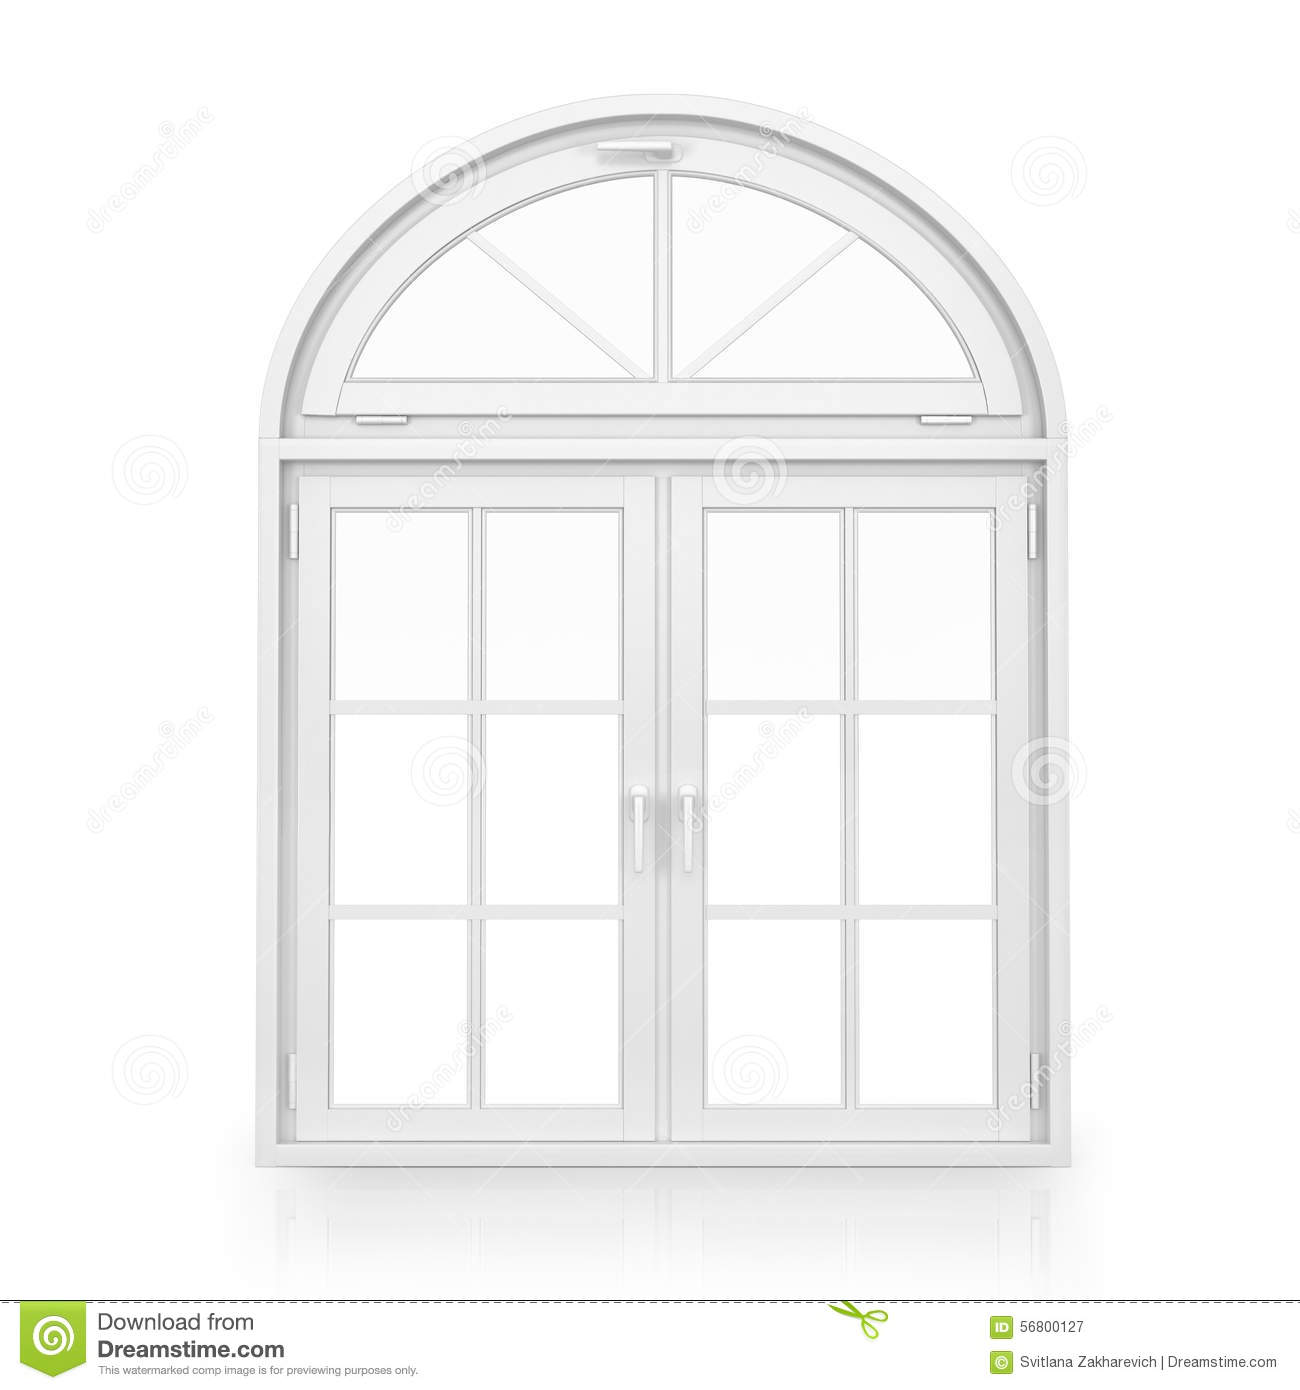 Windows plastic arch window stock illustration image for Window plastic